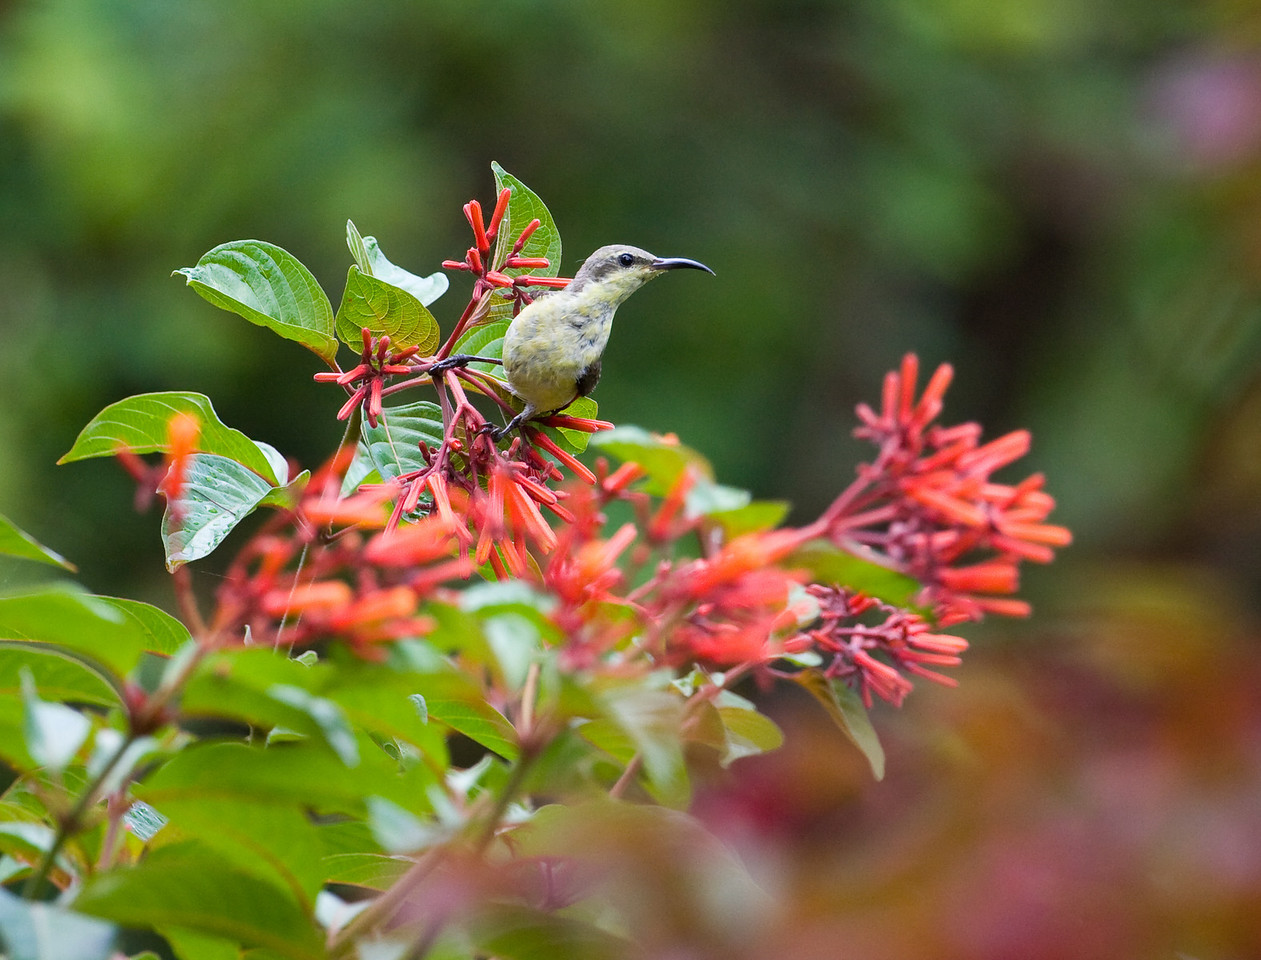 I chased this Sunbird around these lovely flowering trees for the longest time.  Skittish little thing - behaved kinda like a hummingbird, though not quite so amped up.  Thankfully, it stopped and perched to suck the nectar out of these flowers, which was the only reason I managed the shots that I did.<br /> <br /> Location: Pench National Park, India<br /> <br /> Lens used: Canon 100-400mm f4.5-5.6 IS